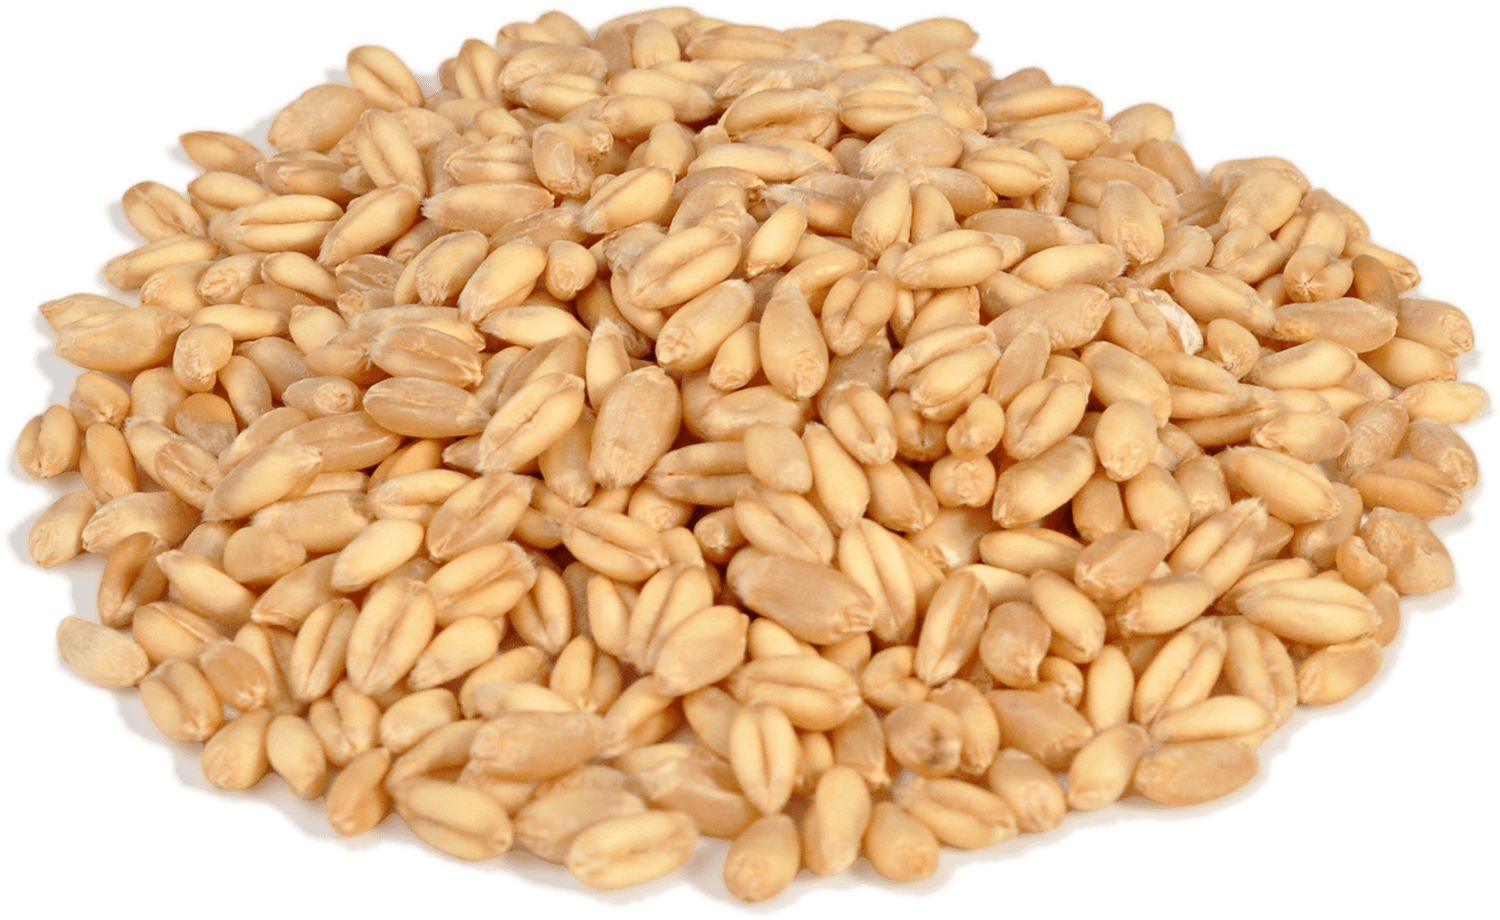 Png image purepng free. Grain clipart wheat seed